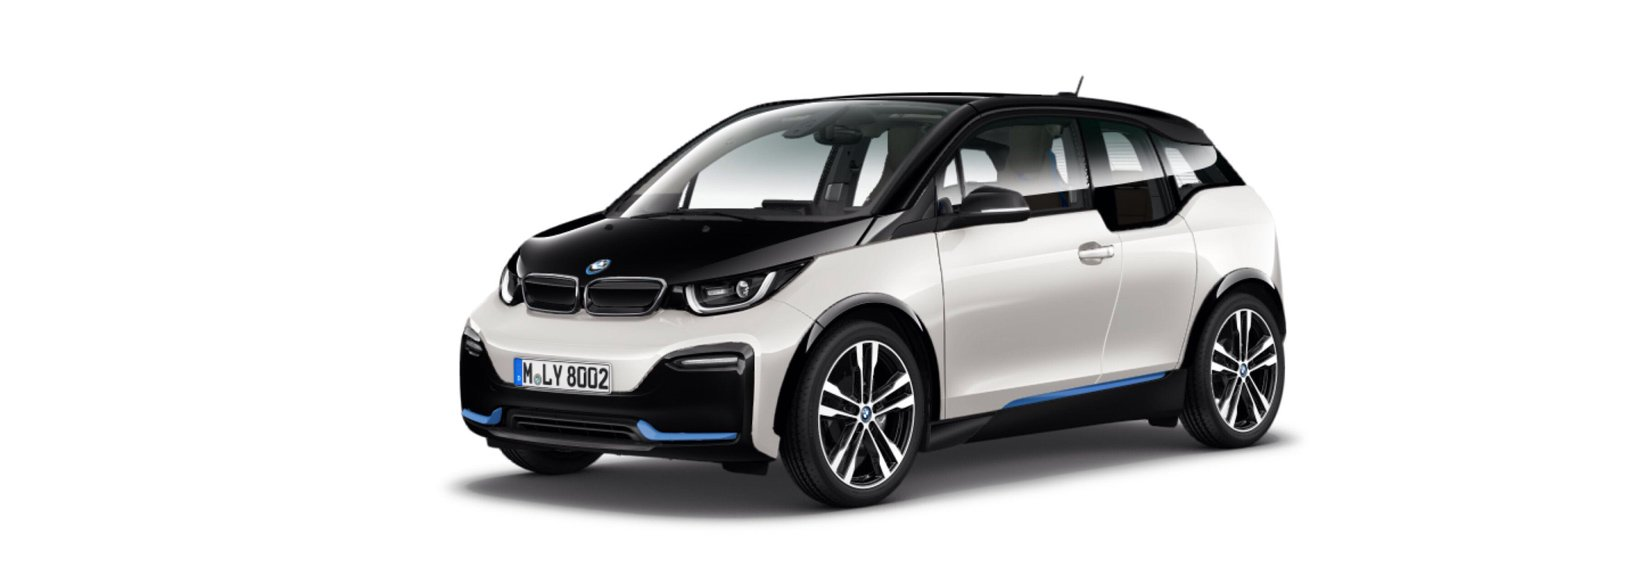 bmw i3s aussenfarbe cappariswei mit akzent bmw i blau. Black Bedroom Furniture Sets. Home Design Ideas